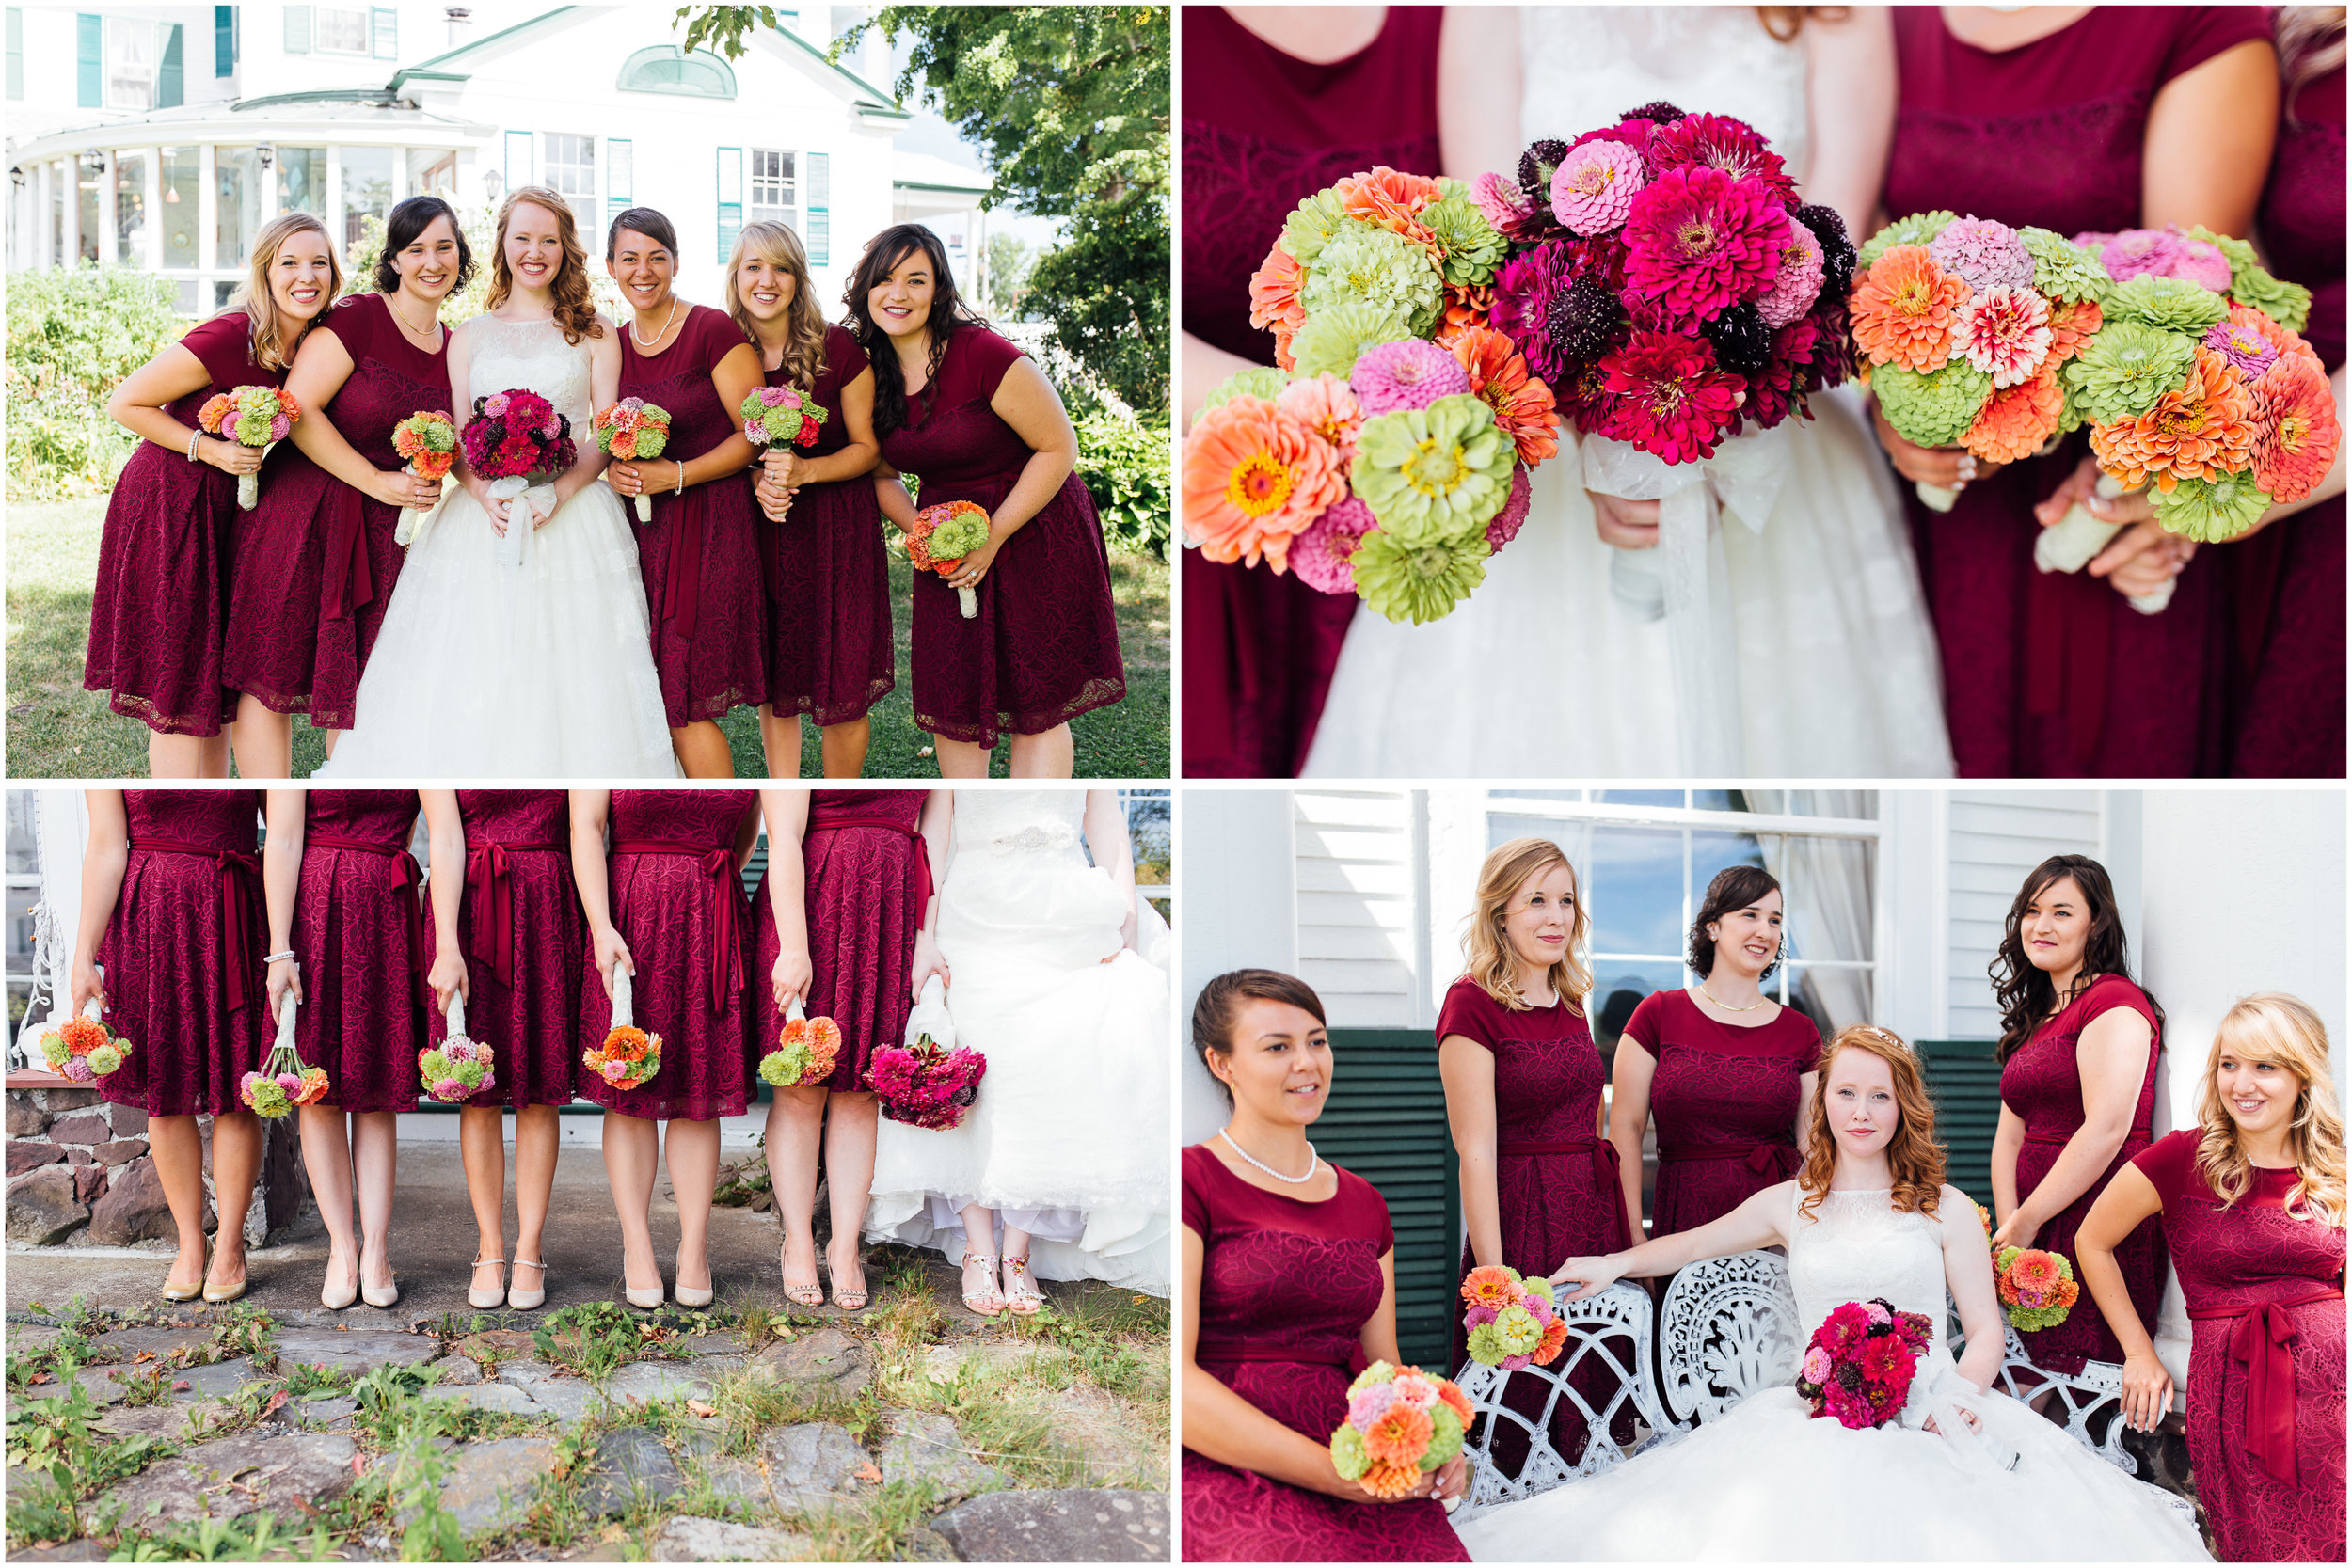 Bride, Bridesmaids, and their Beautiful Flowers